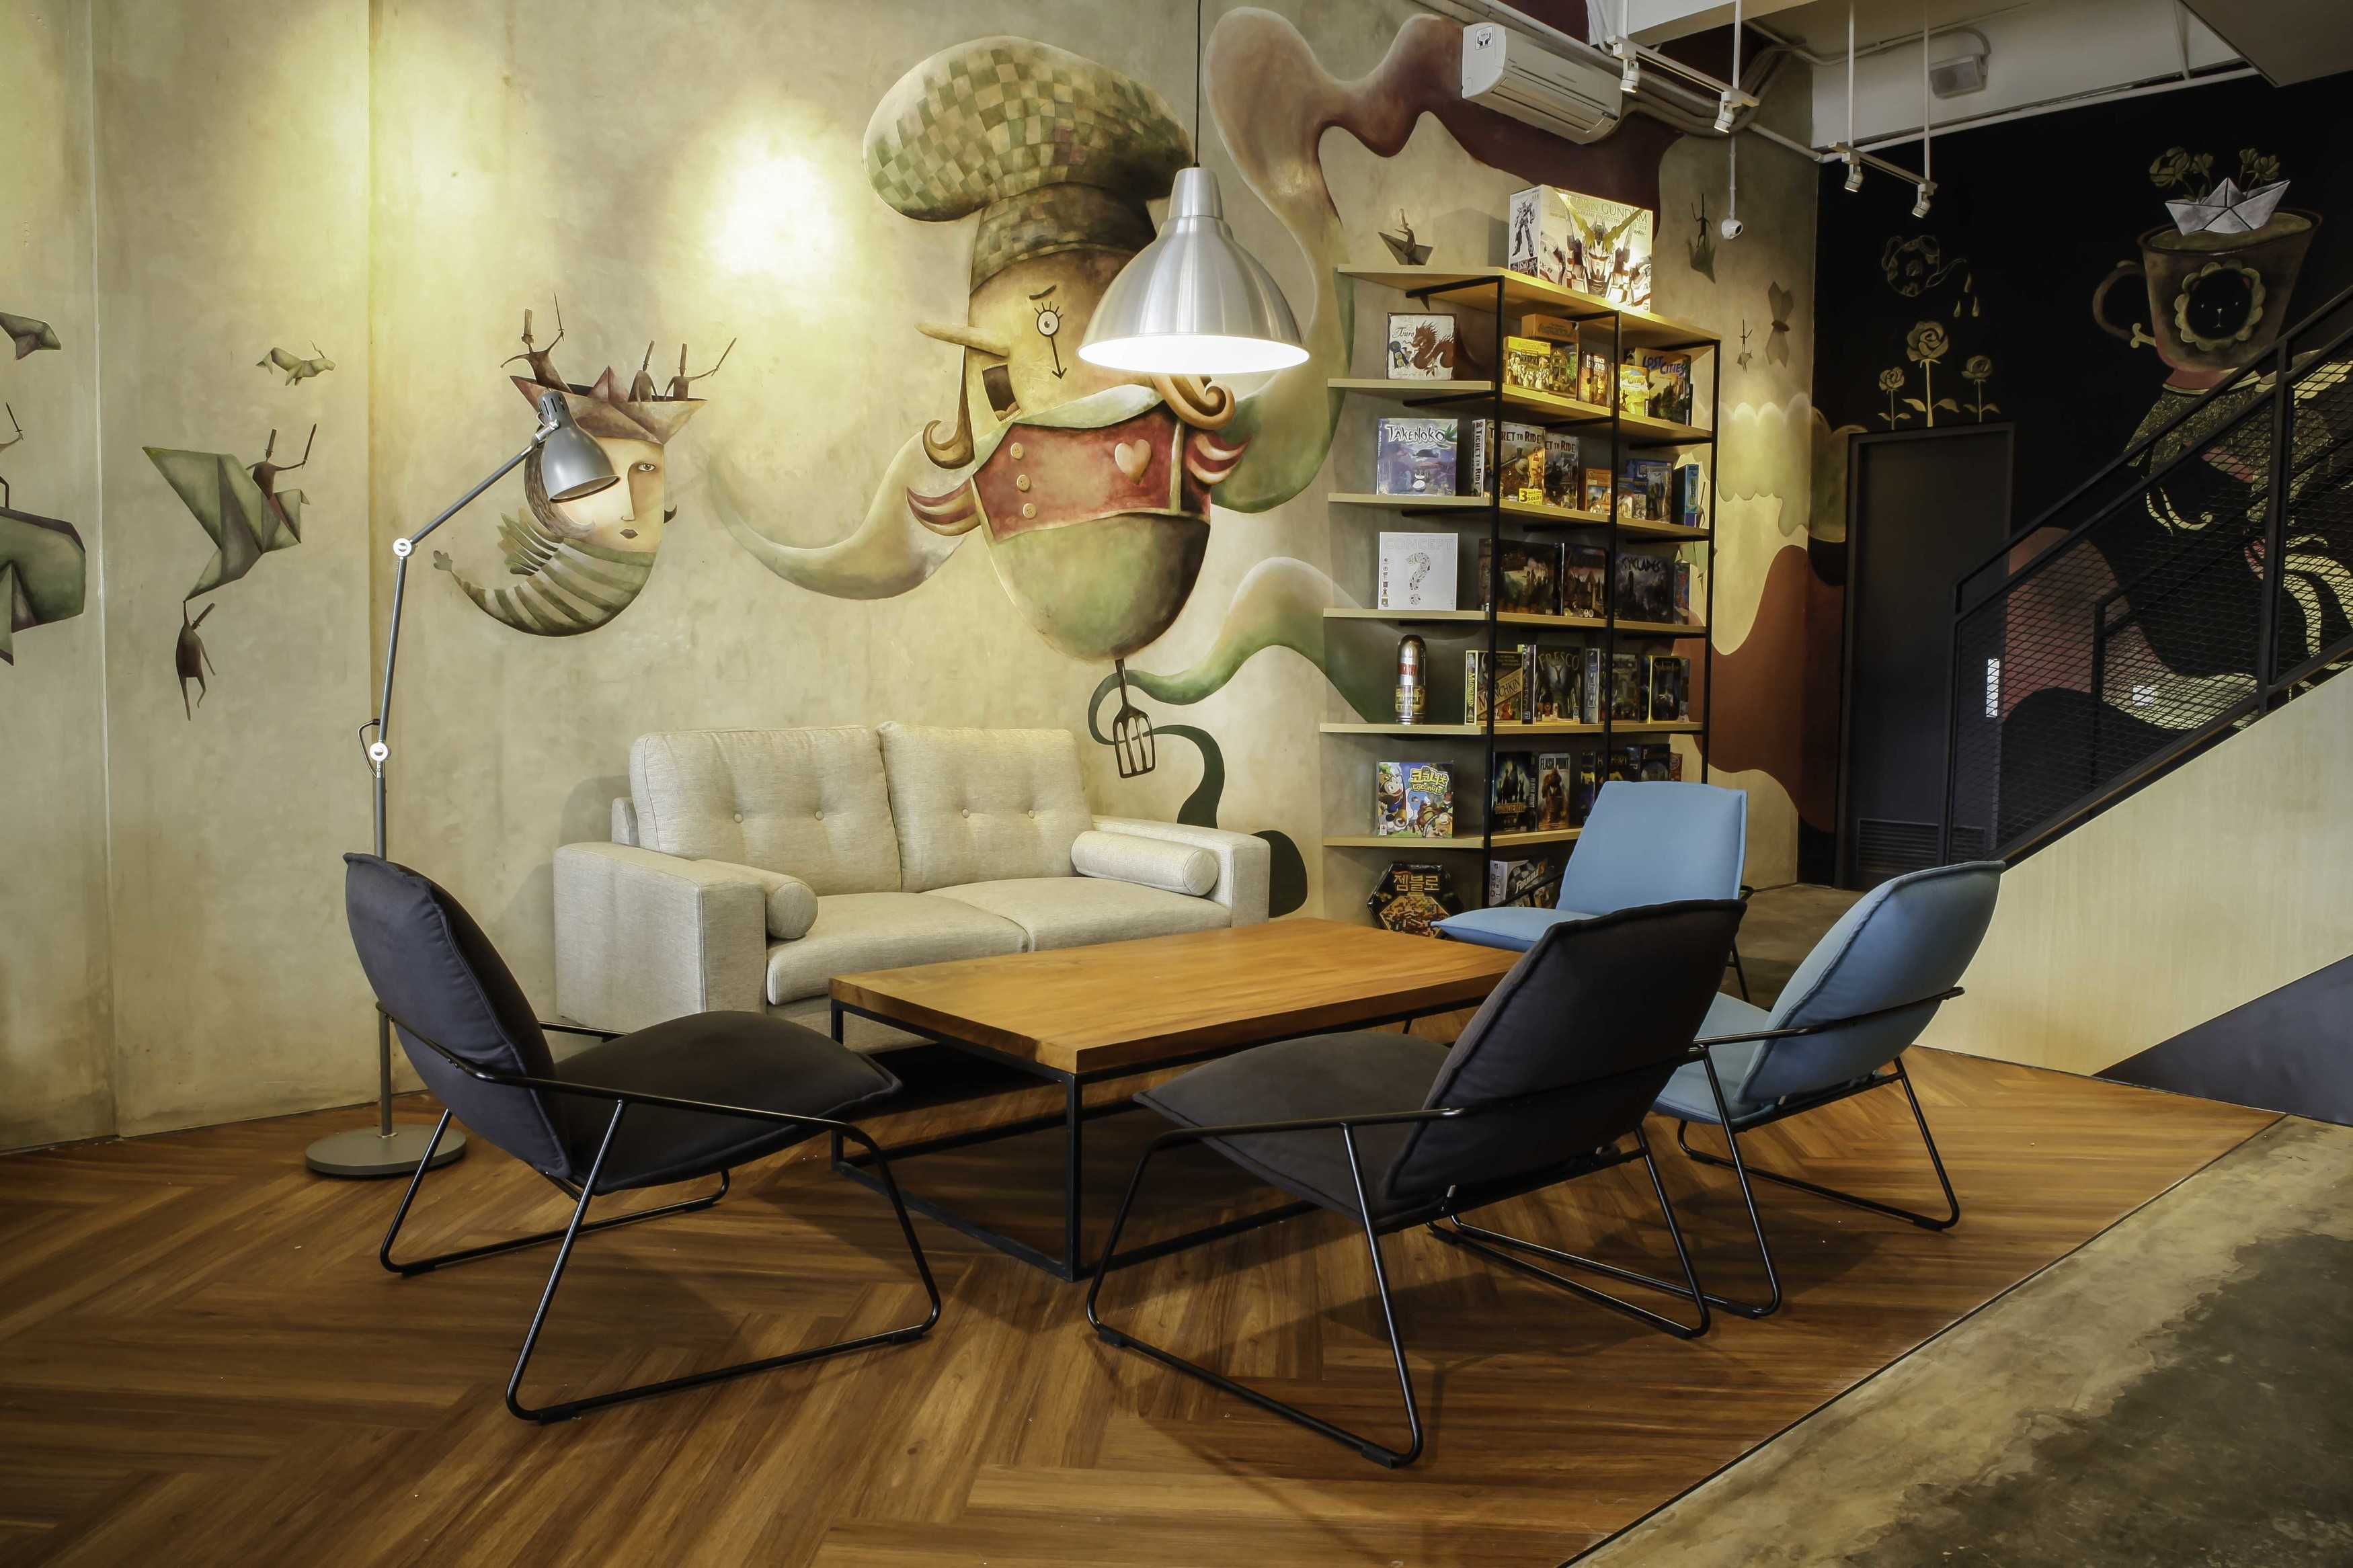 Design Intervention The Bunker Gading Serpong Gading Serpong Seating Area   16717